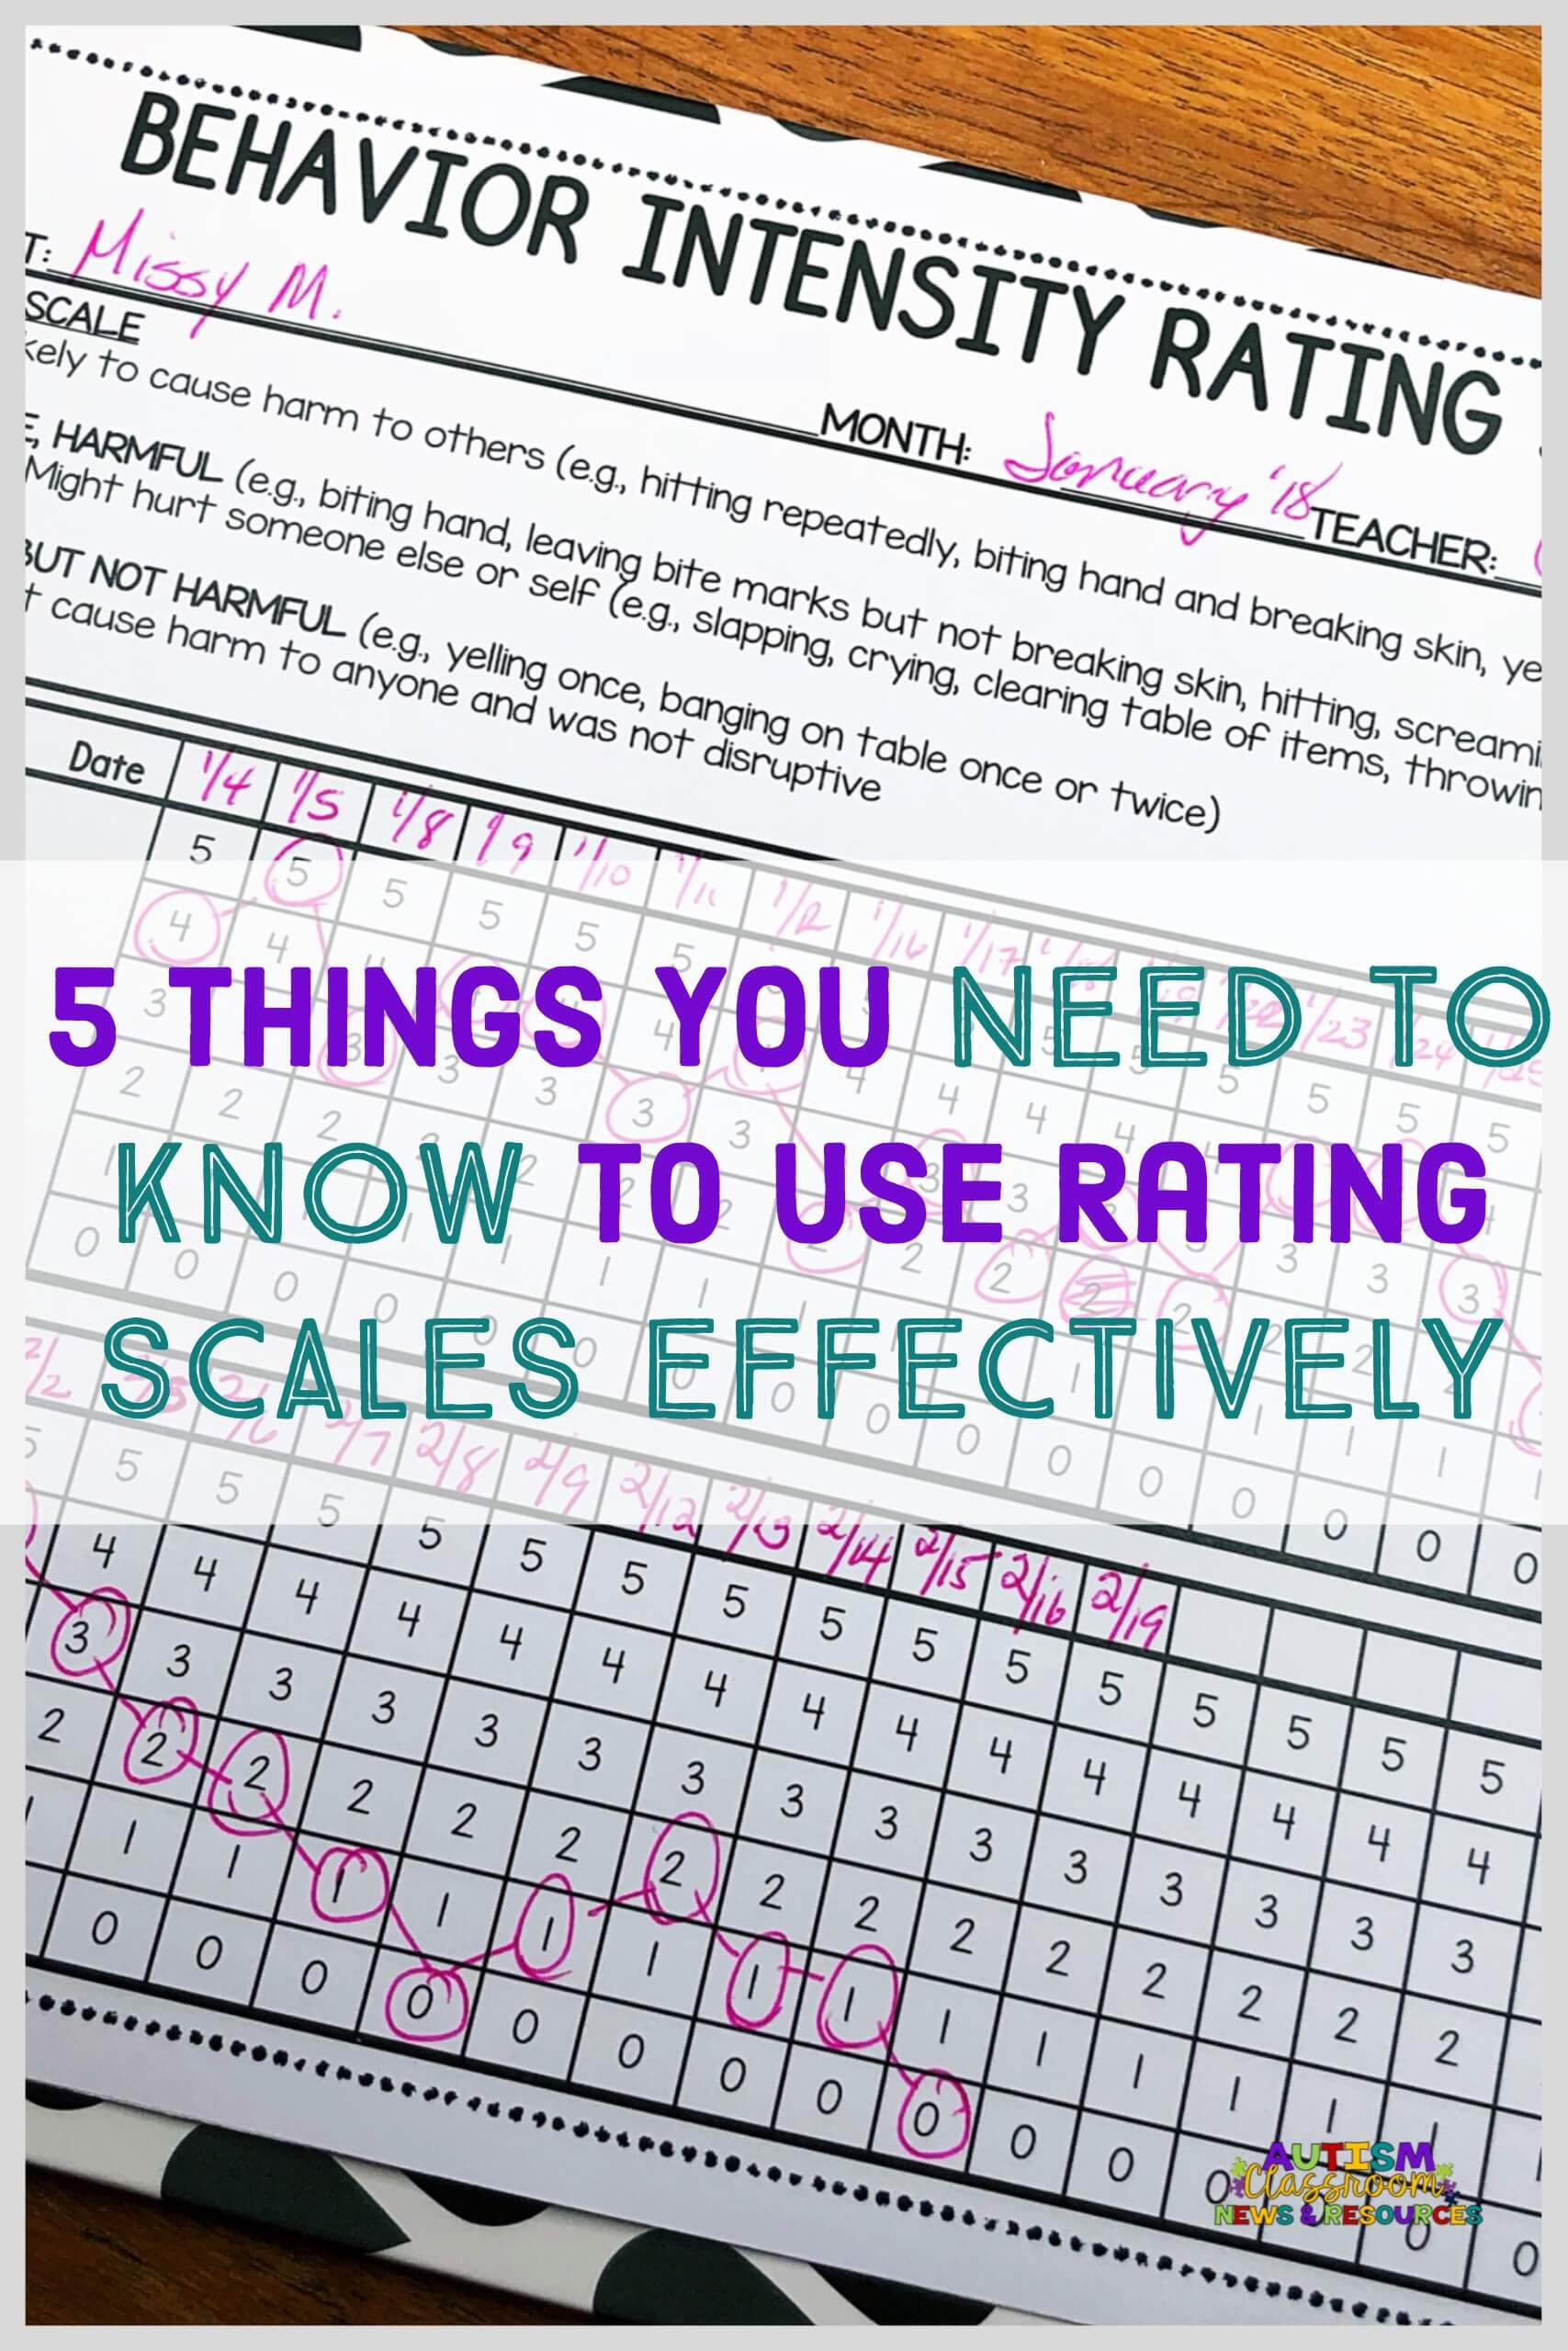 I love using rating scales for assessing challenging behavior in the special ed classroom or in RTI.  To make sure they give me the information I need, I use the 5 strategies outlined here. #data #specialeducation #datacollection #ratingscales #pbis #challengingbehavior #behaviormanagement